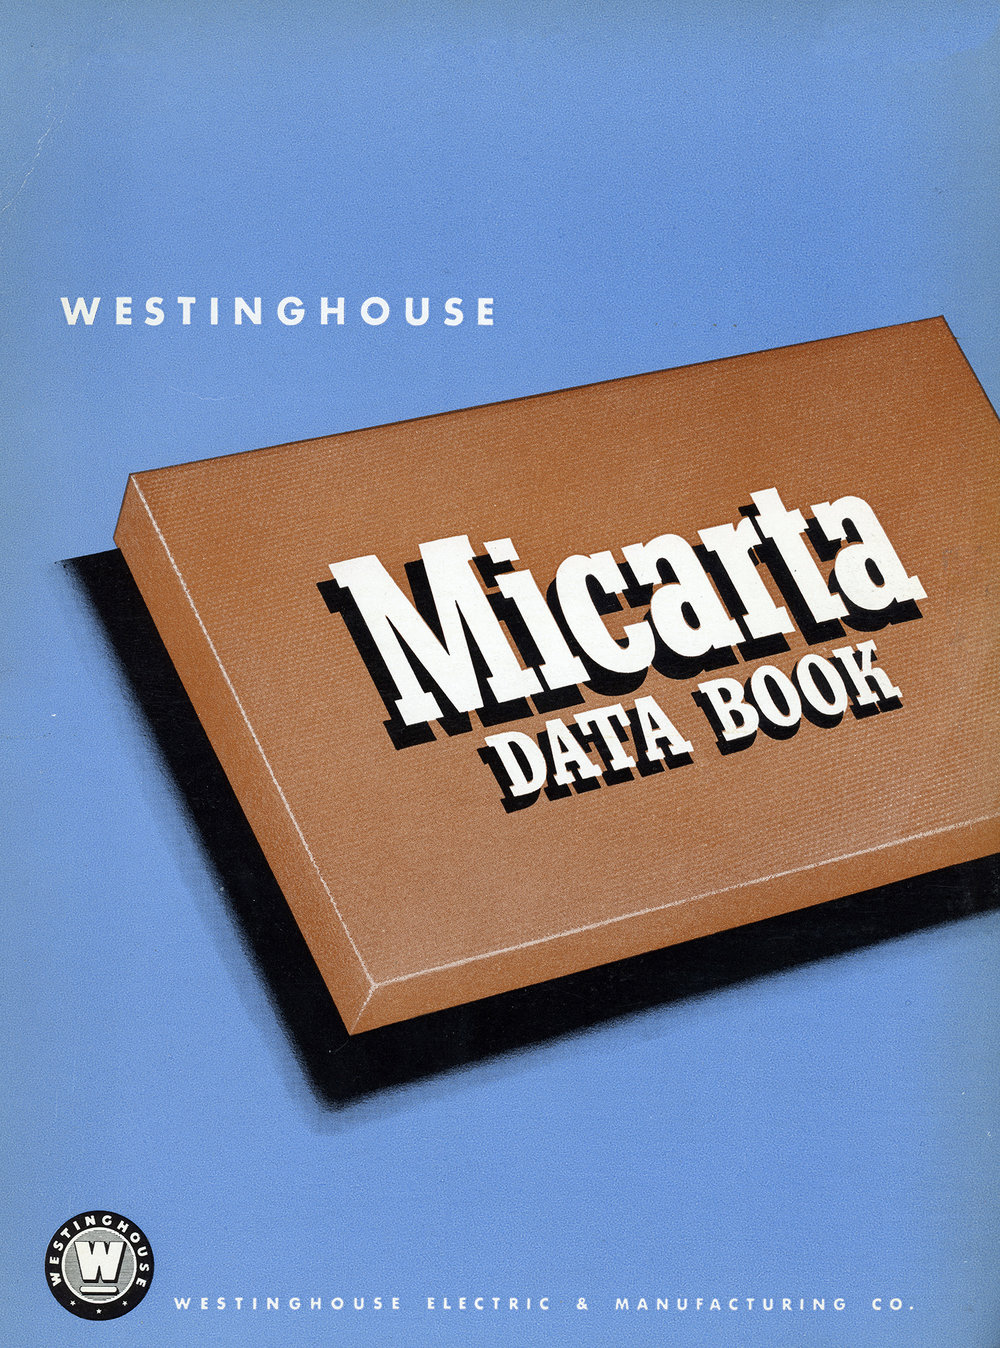 Westinghouse Micarta Data Book